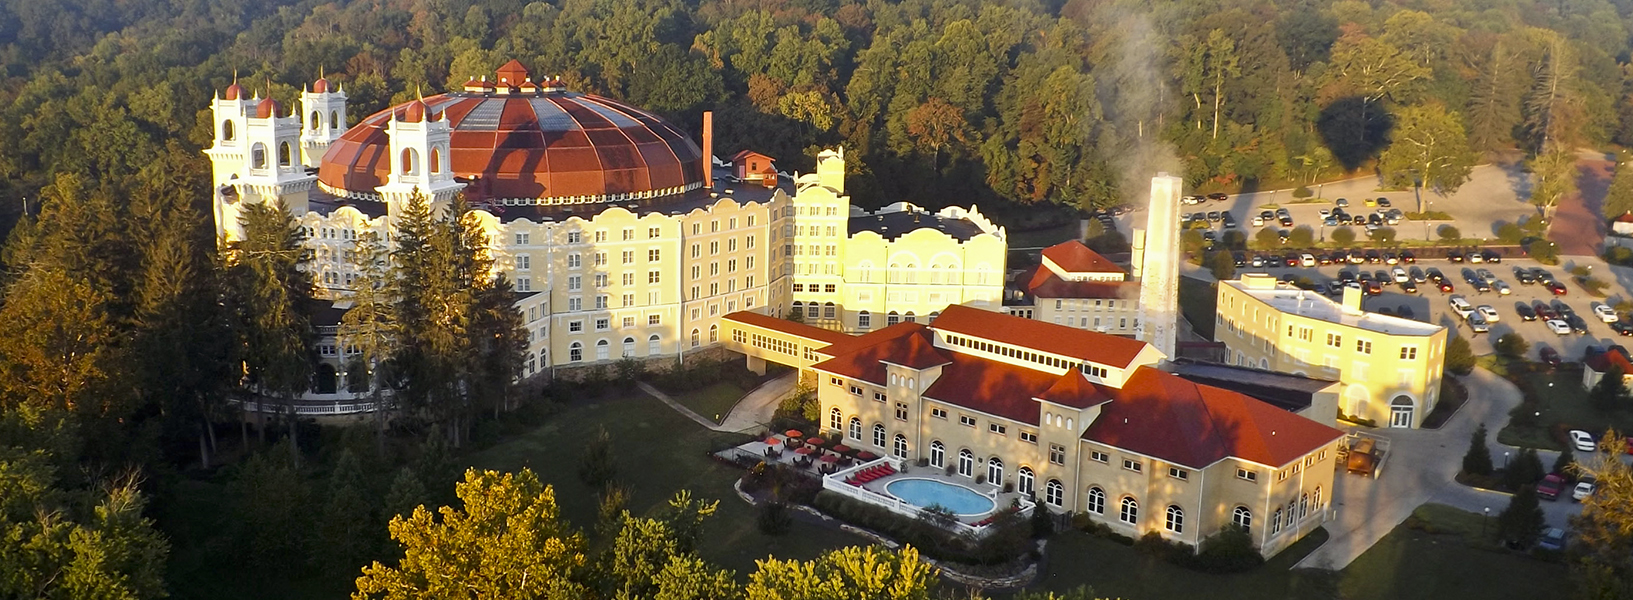 French lick hotel fire